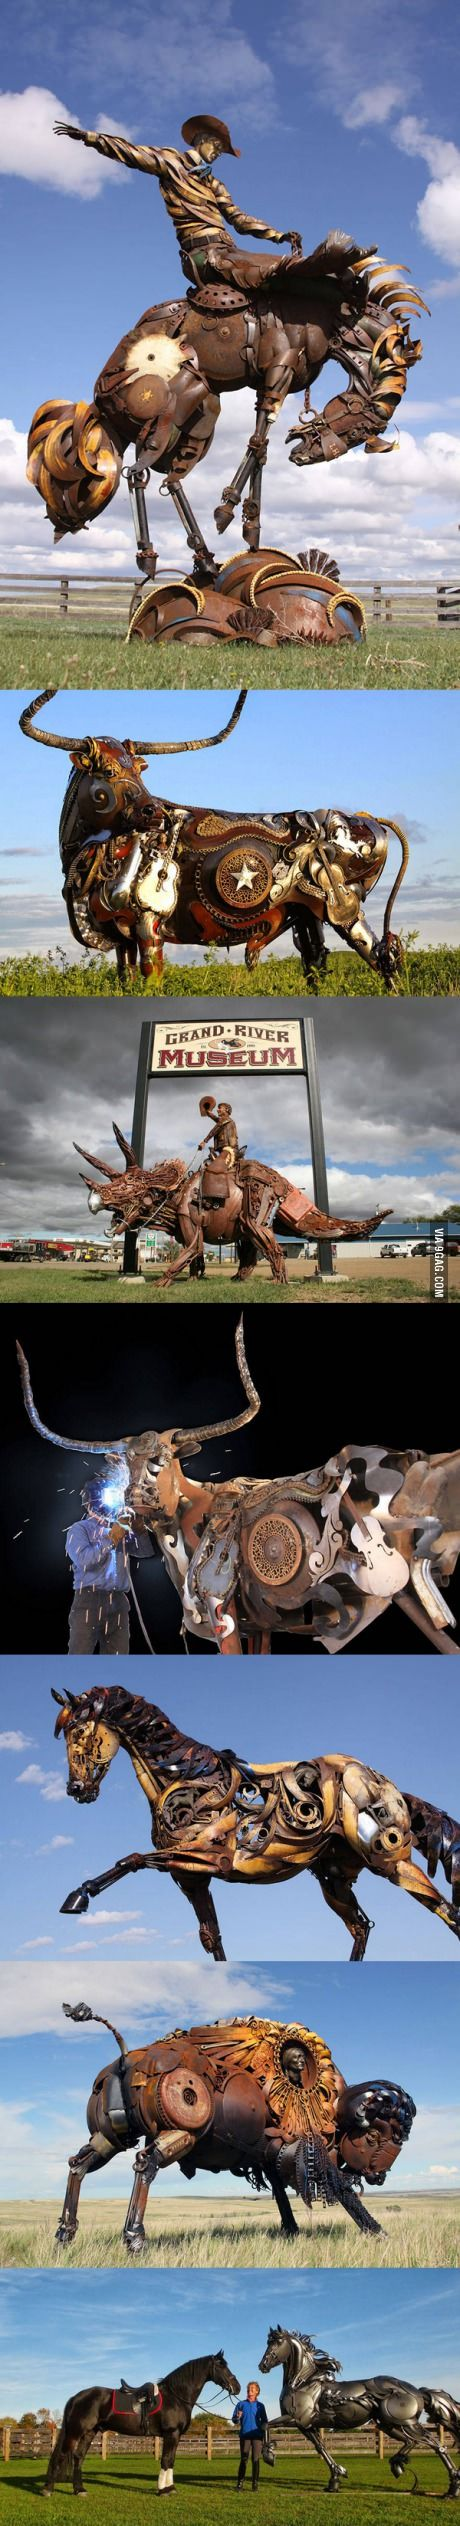 John Lopez creates the most amazing sculptures using old